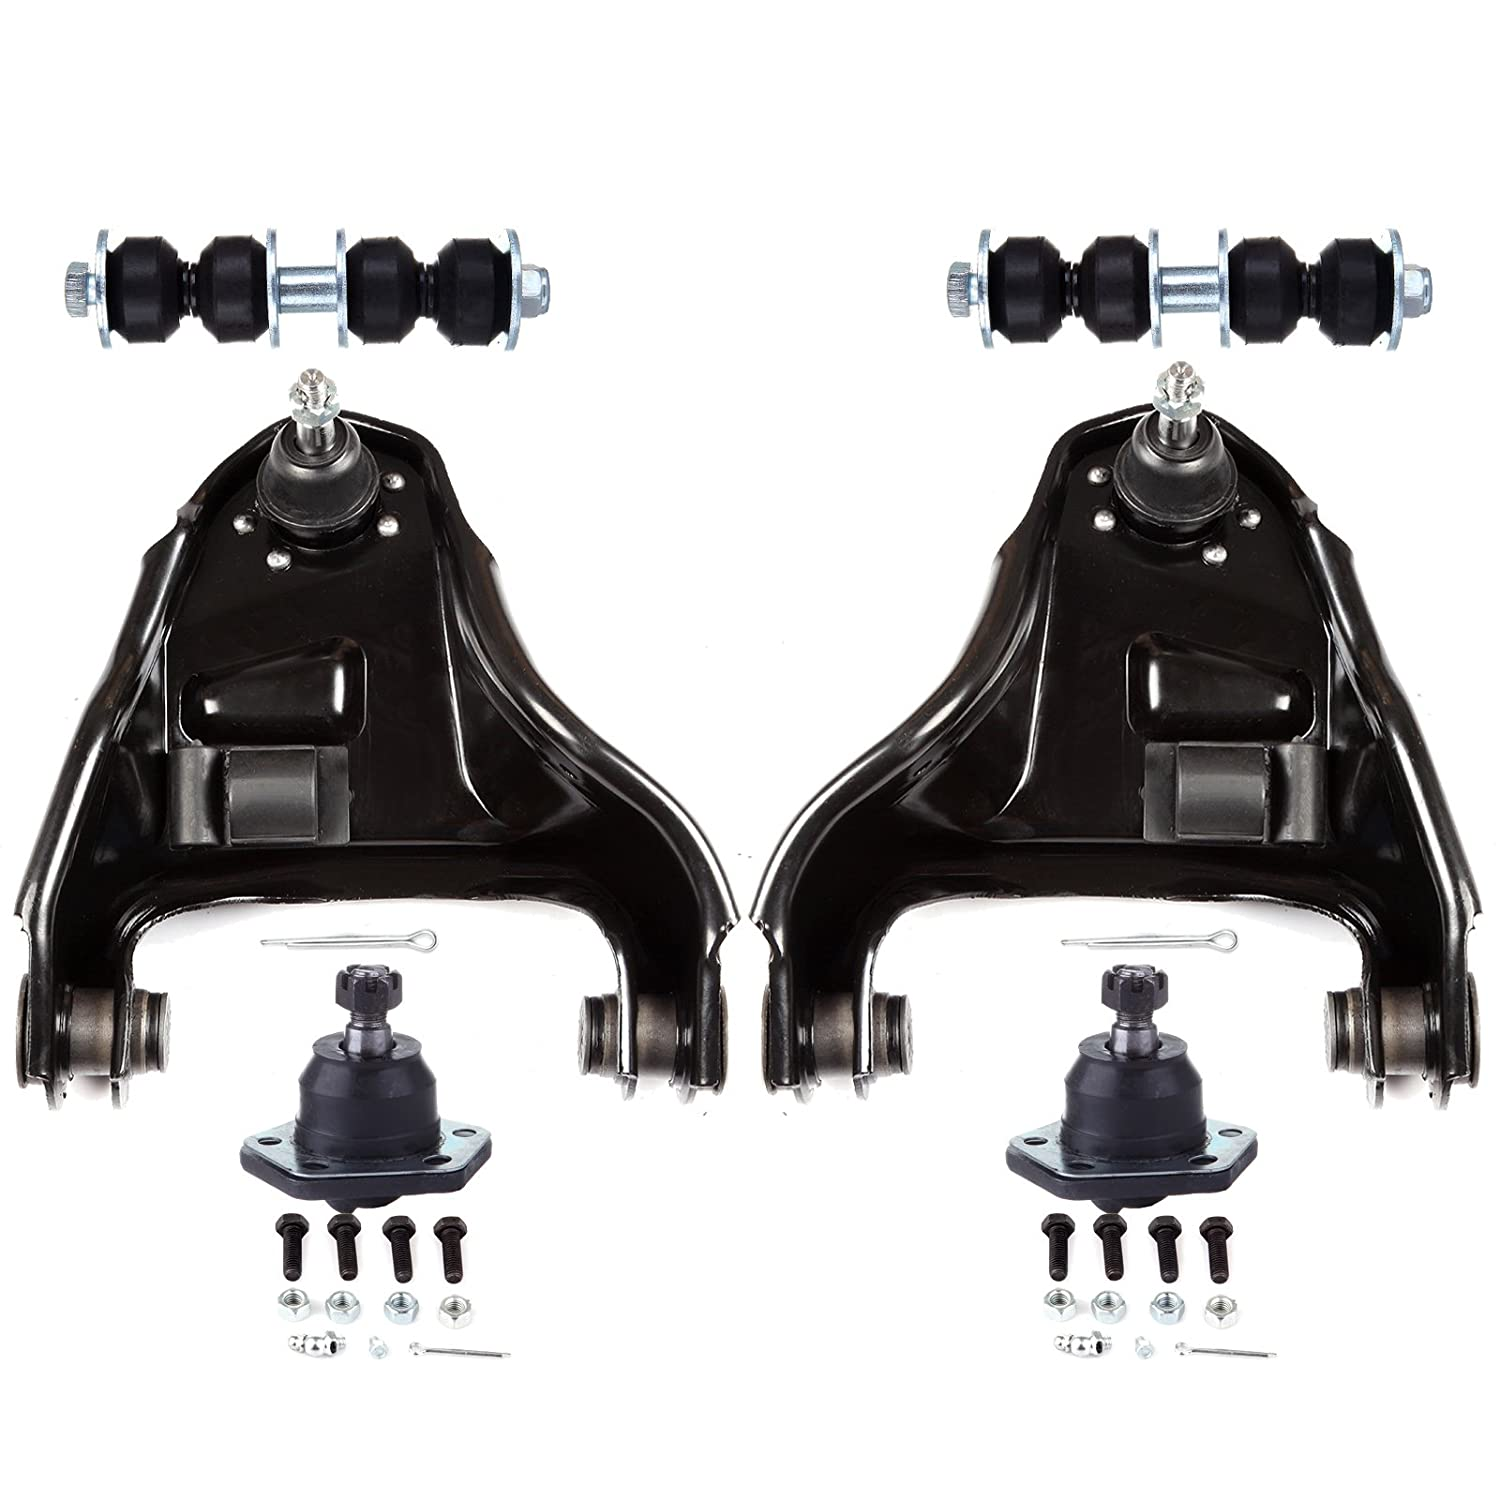 ECCPP Control Arm Ball Joint Sway Bar Link Suspension Kit for 1997-2003 GMC Sonoma 4WD (6Pcs) 801682-5211-1745211